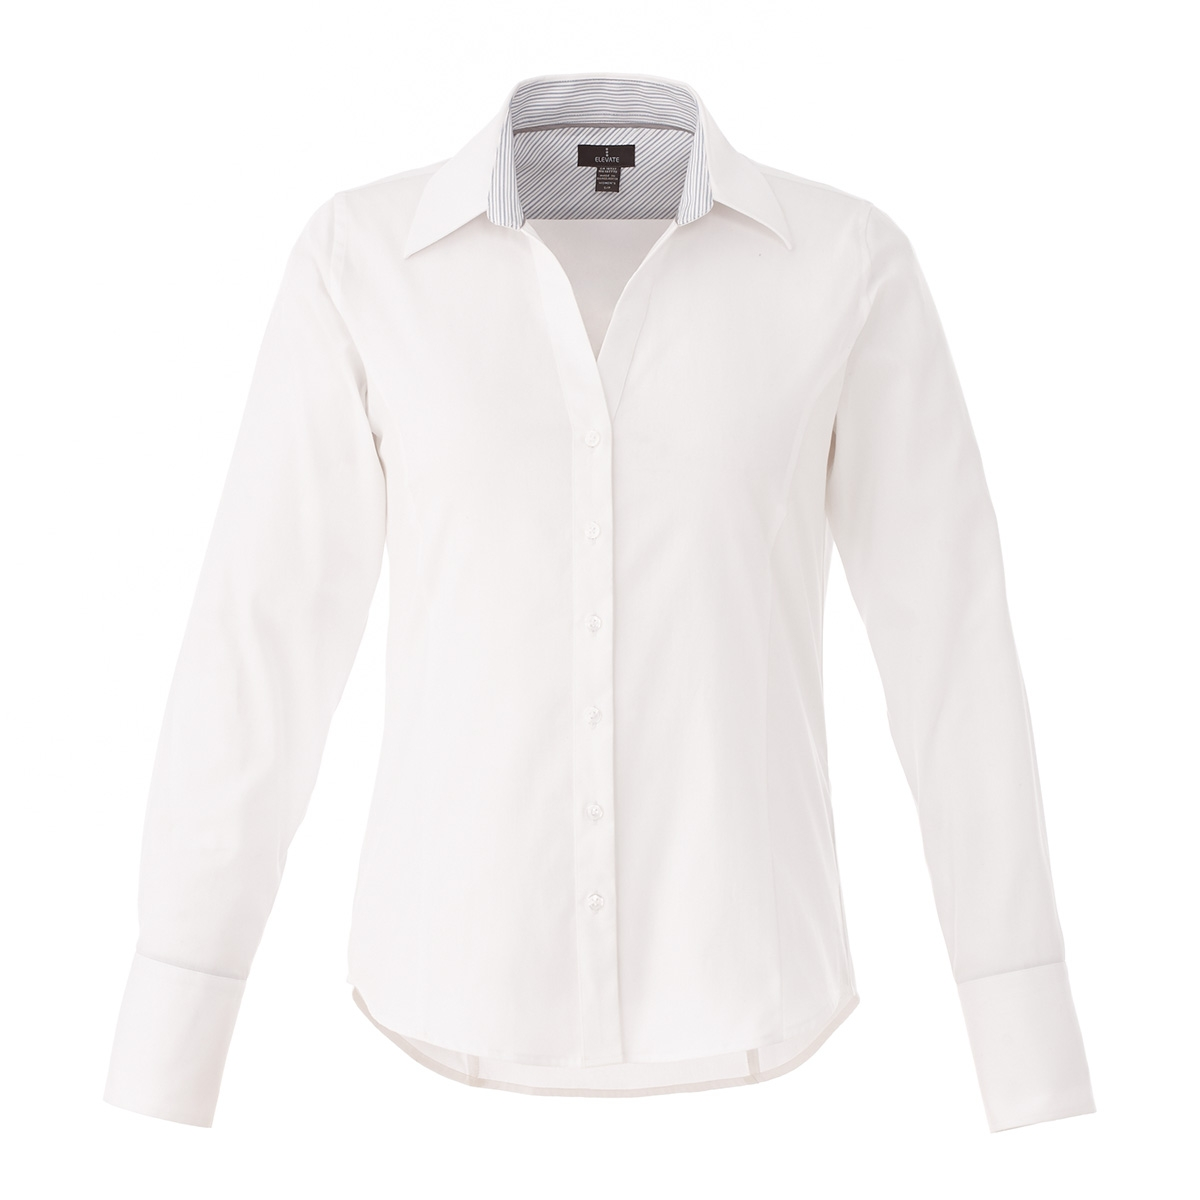 Cromwell Long Sleeve Women's Shirt, #97309 - Embroidered